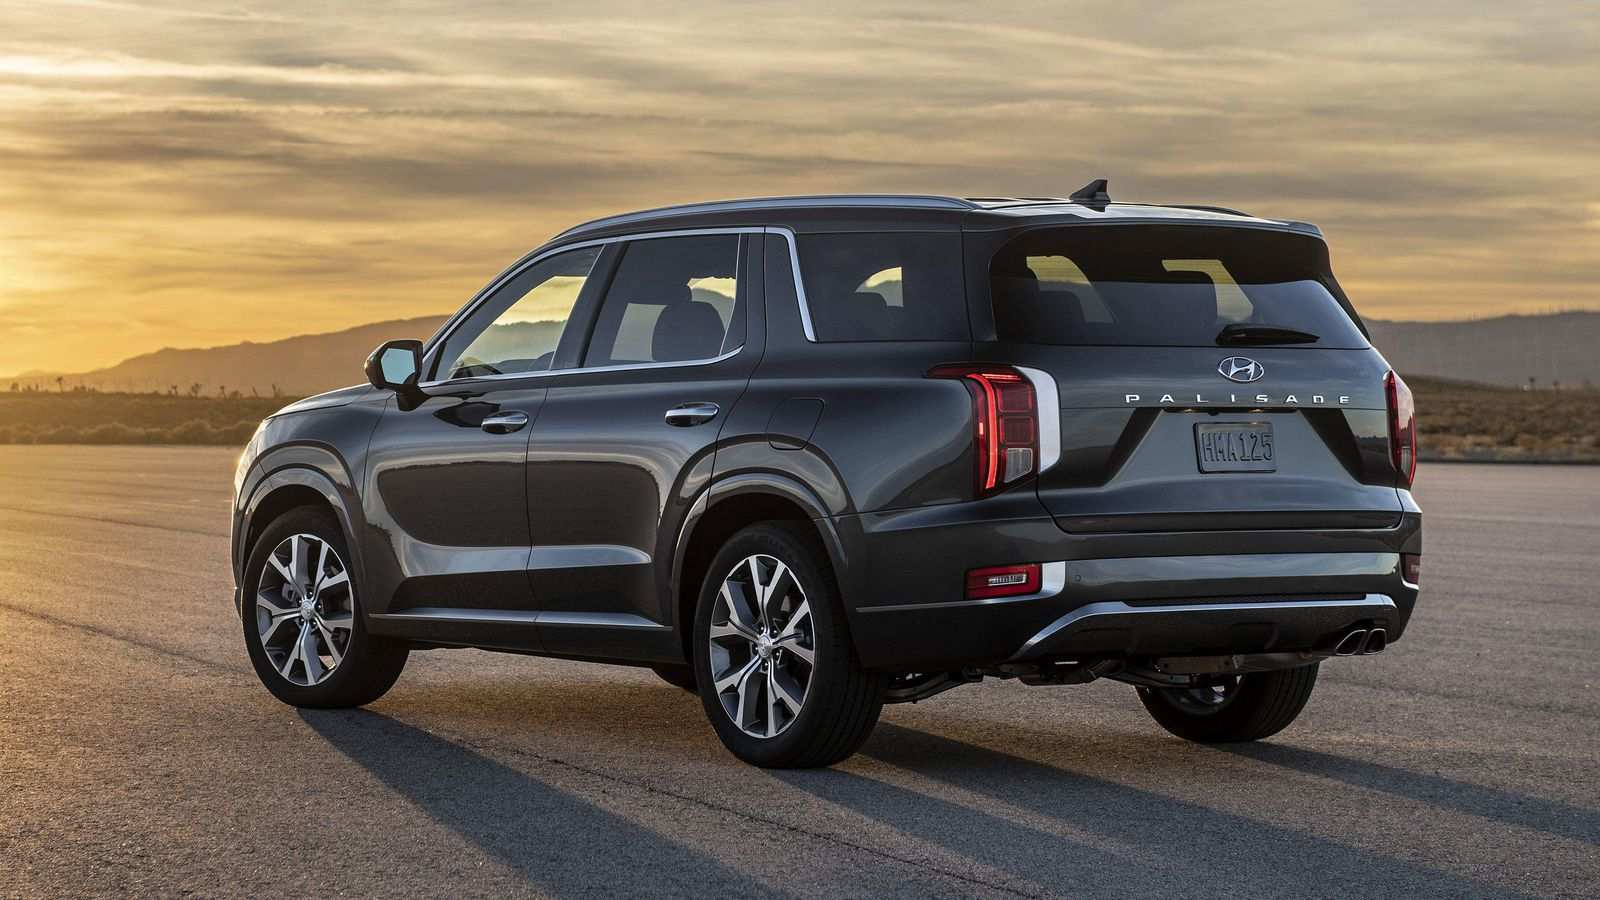 20 New When Will The 2020 Hyundai Palisade Be Available Redesign And Concept